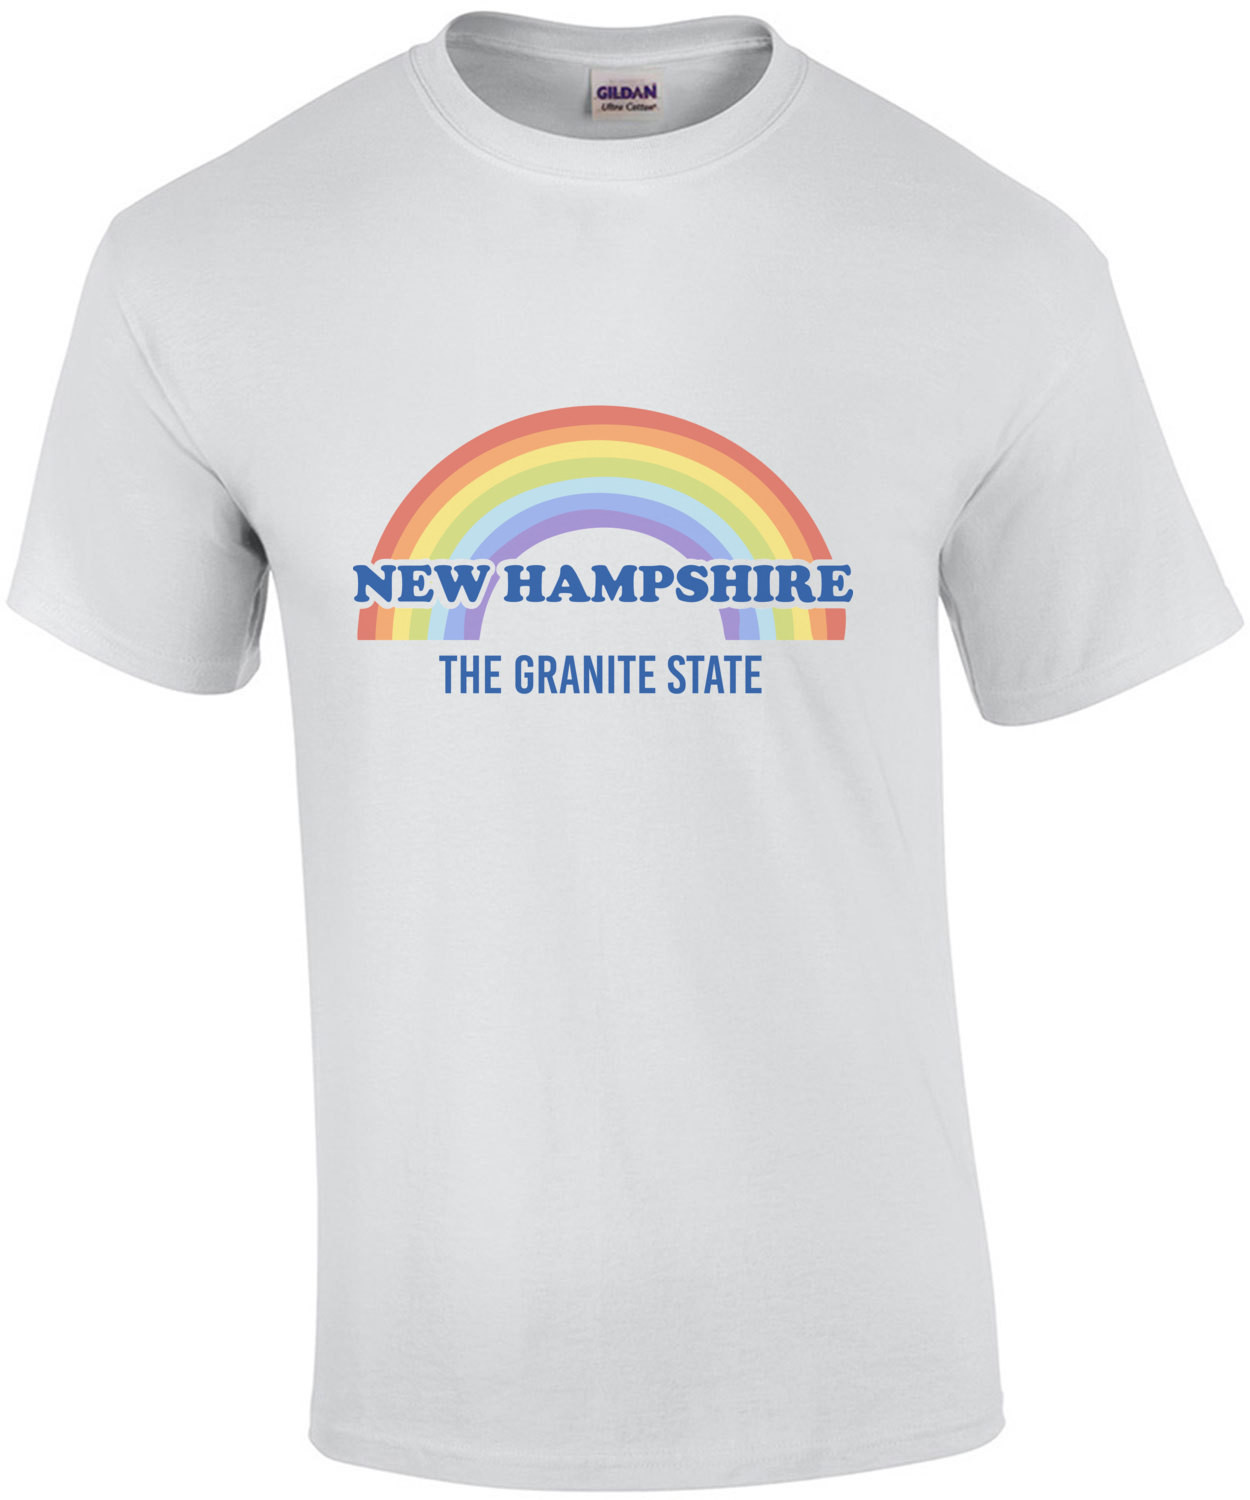 New Hampshire - The Granite State - New Hampshire T-Shirt